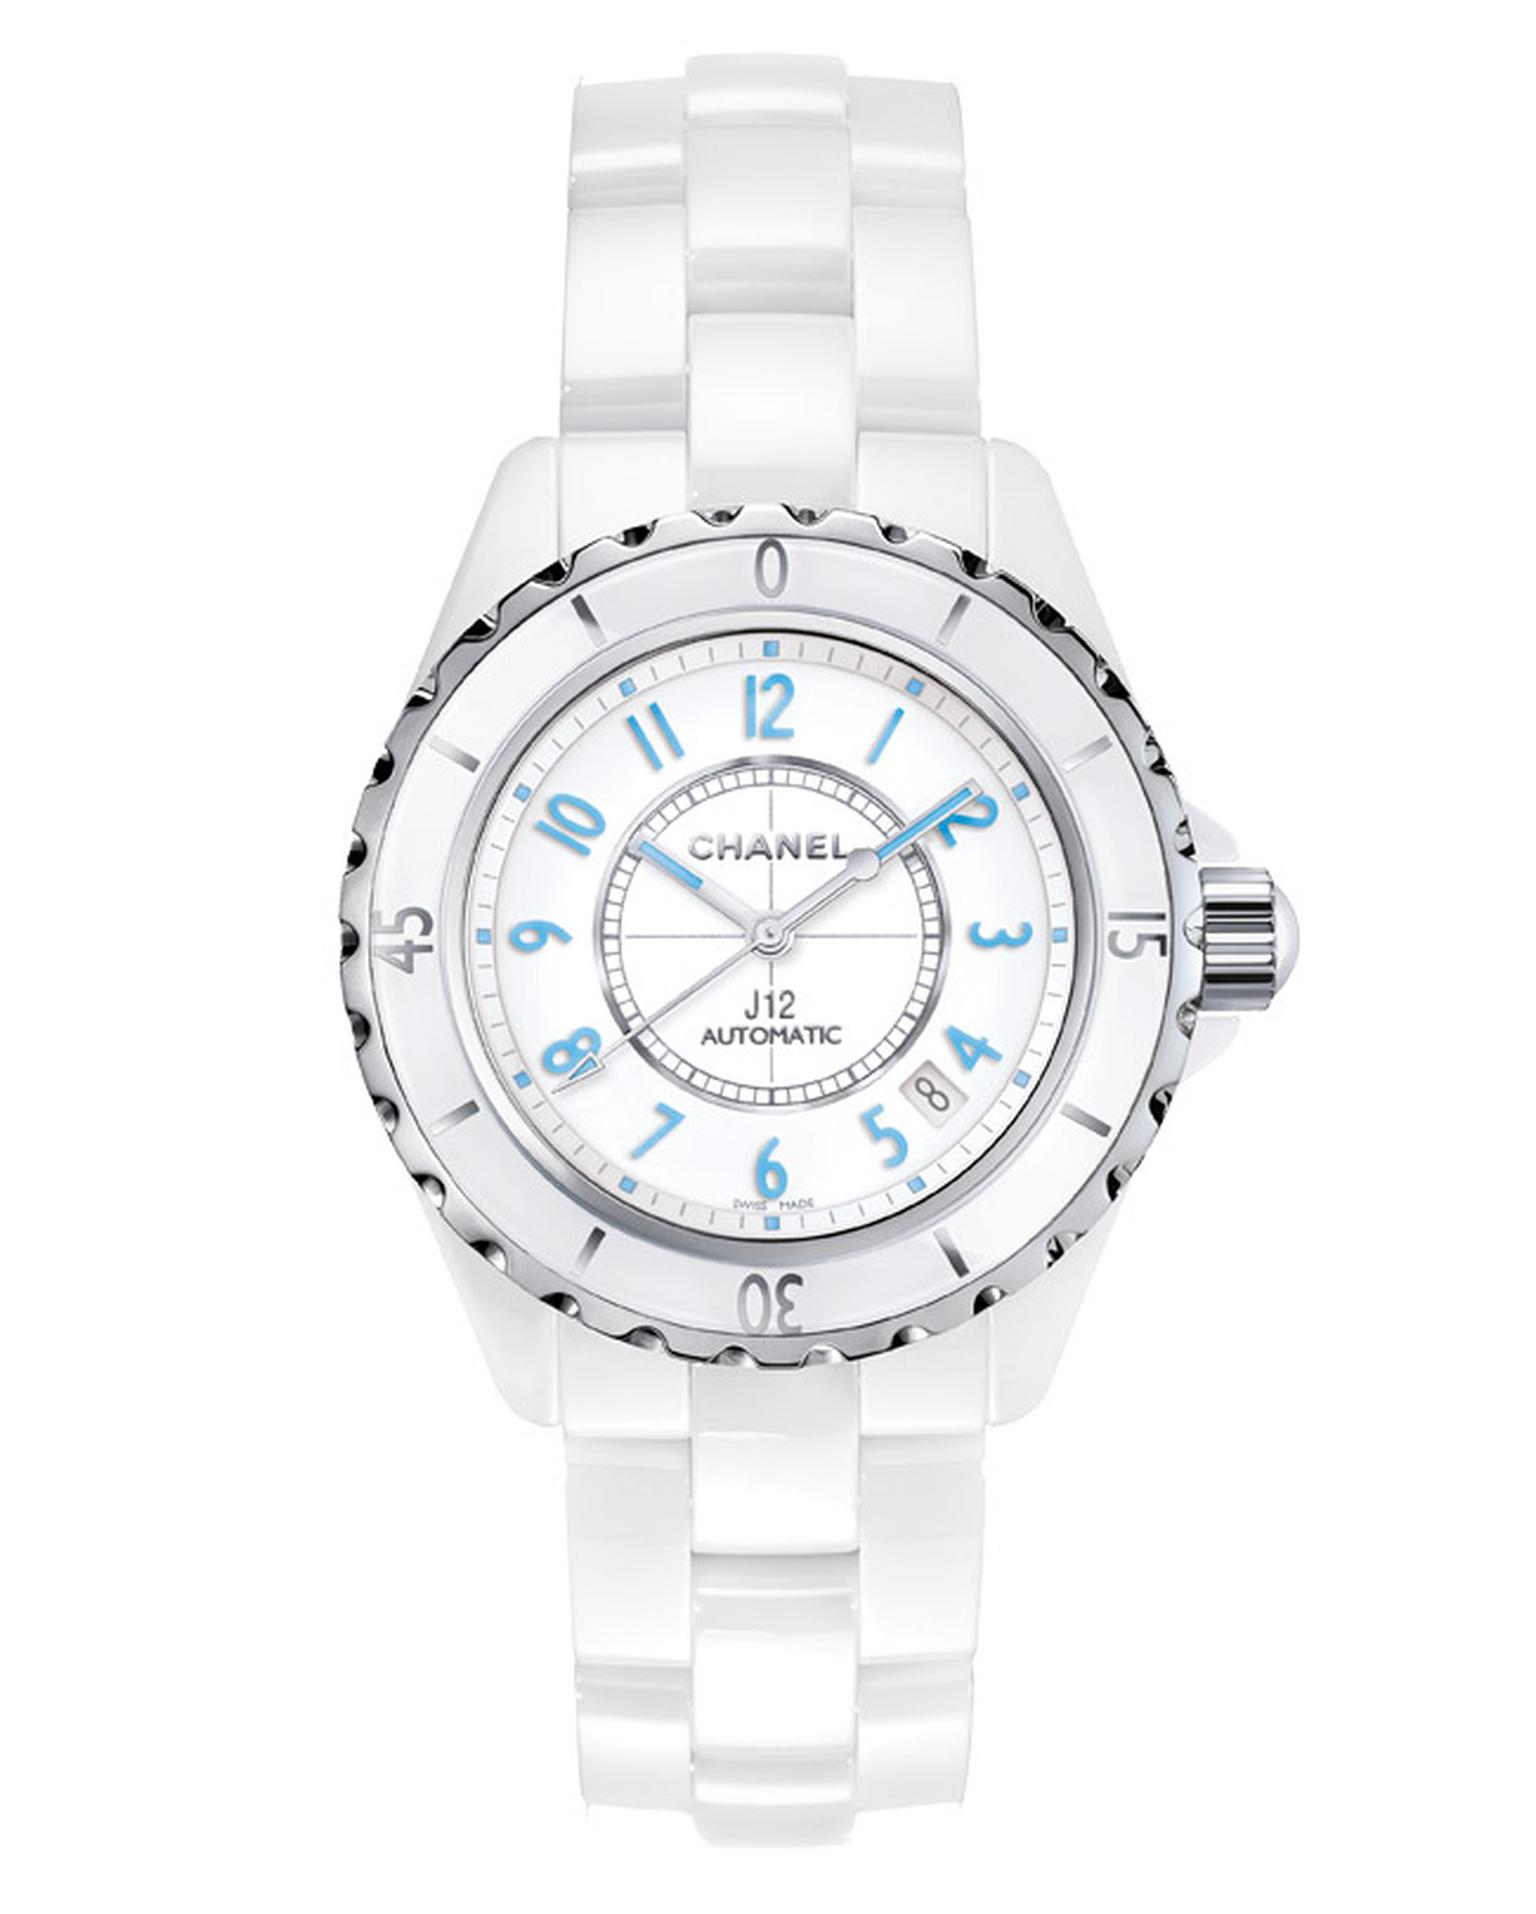 Chanel-J12-Blue-Light-Watch-Main